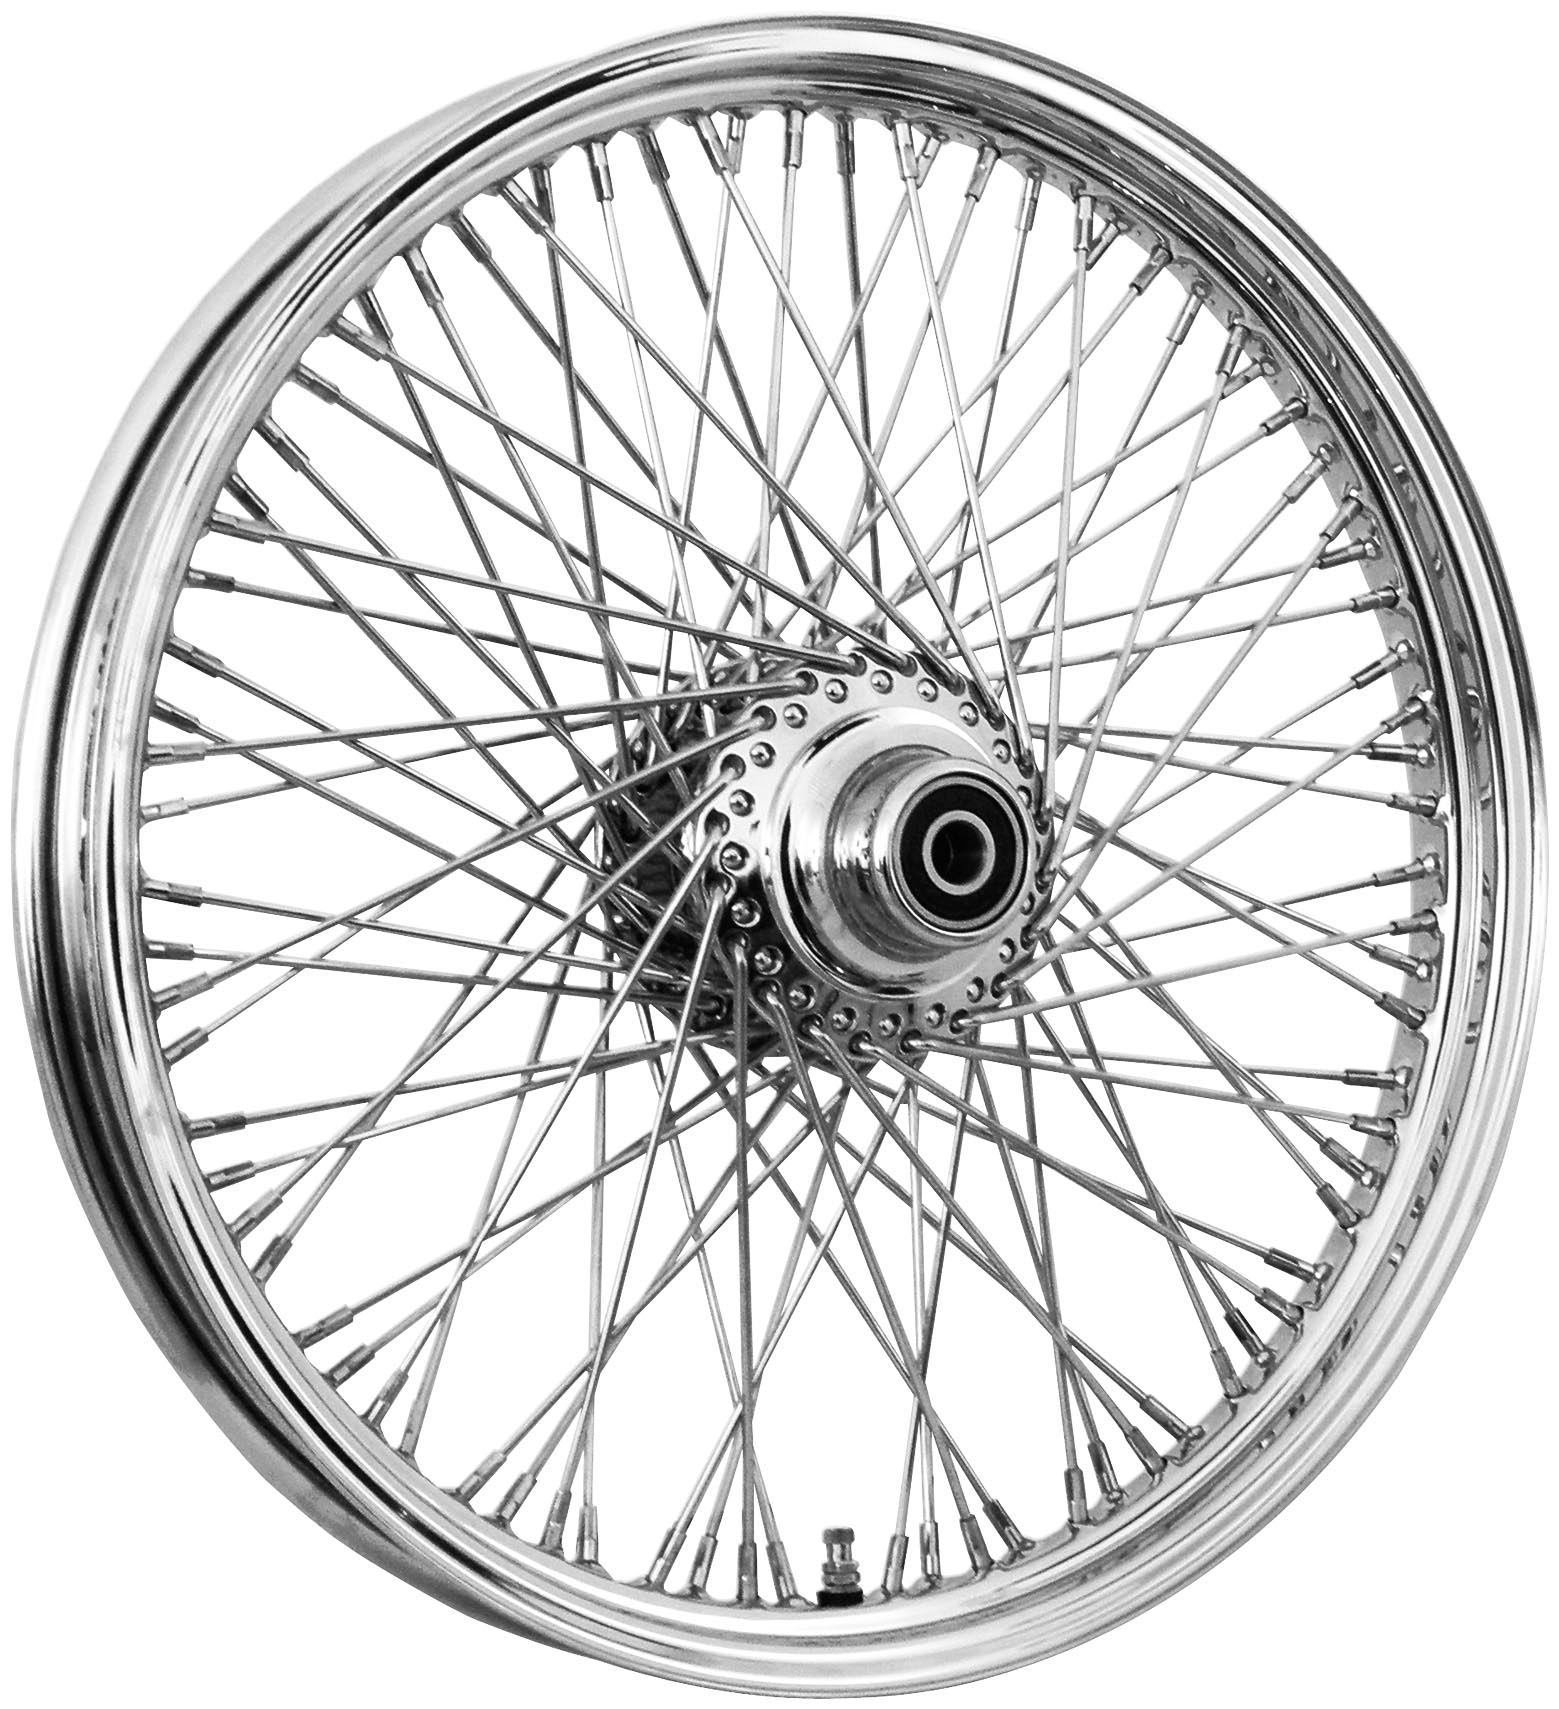 16 x 3.5in. Single Disc Front Wire Wheel